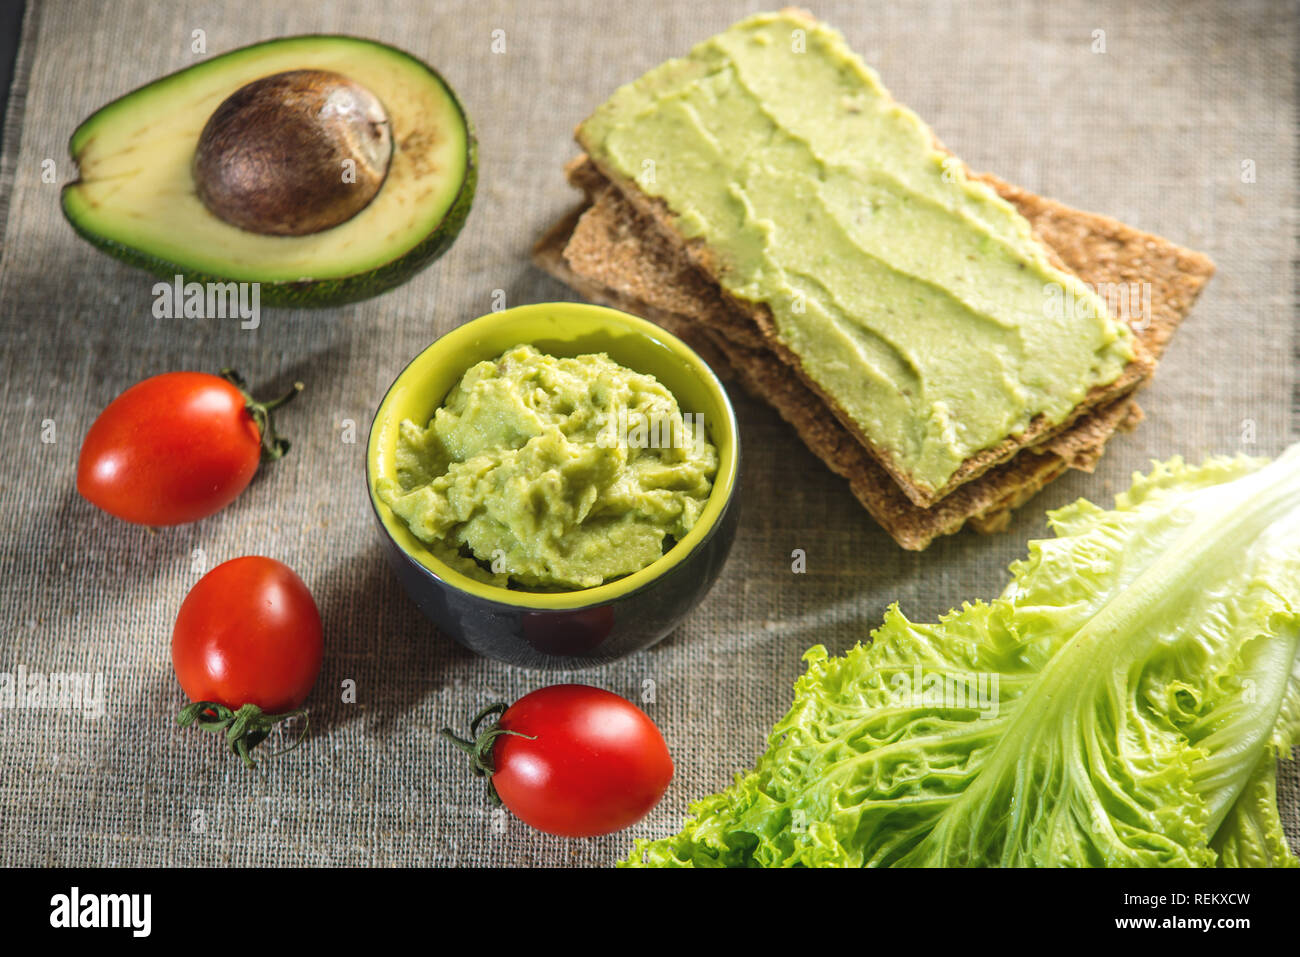 Traditional Mexican cold appetizer made of pureed avocado pulp with bread and vegetables on the table. Concept healthy vegetarian Breakfast - Stock Image